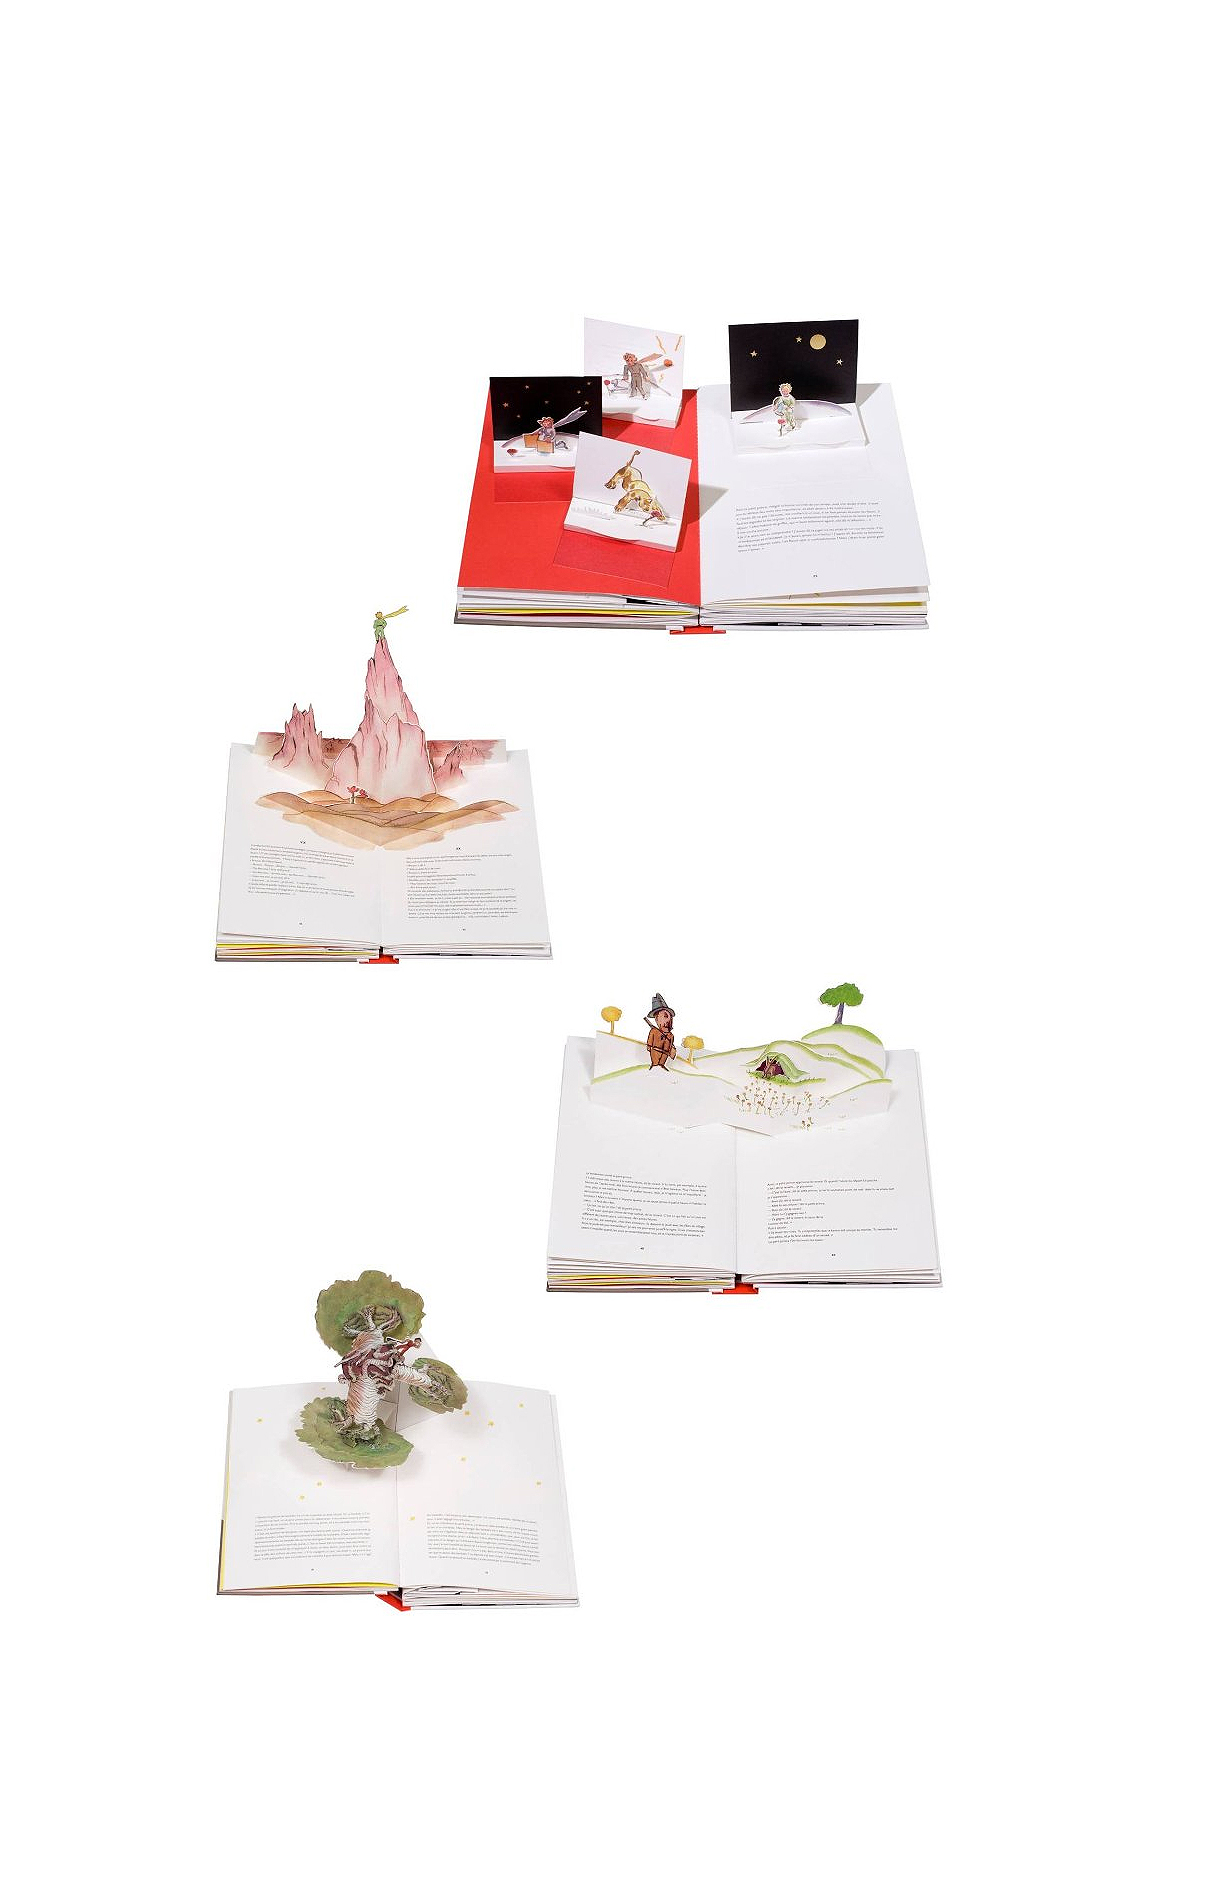 The Little Prince Deluxe Pop-Up Edition interior spreads